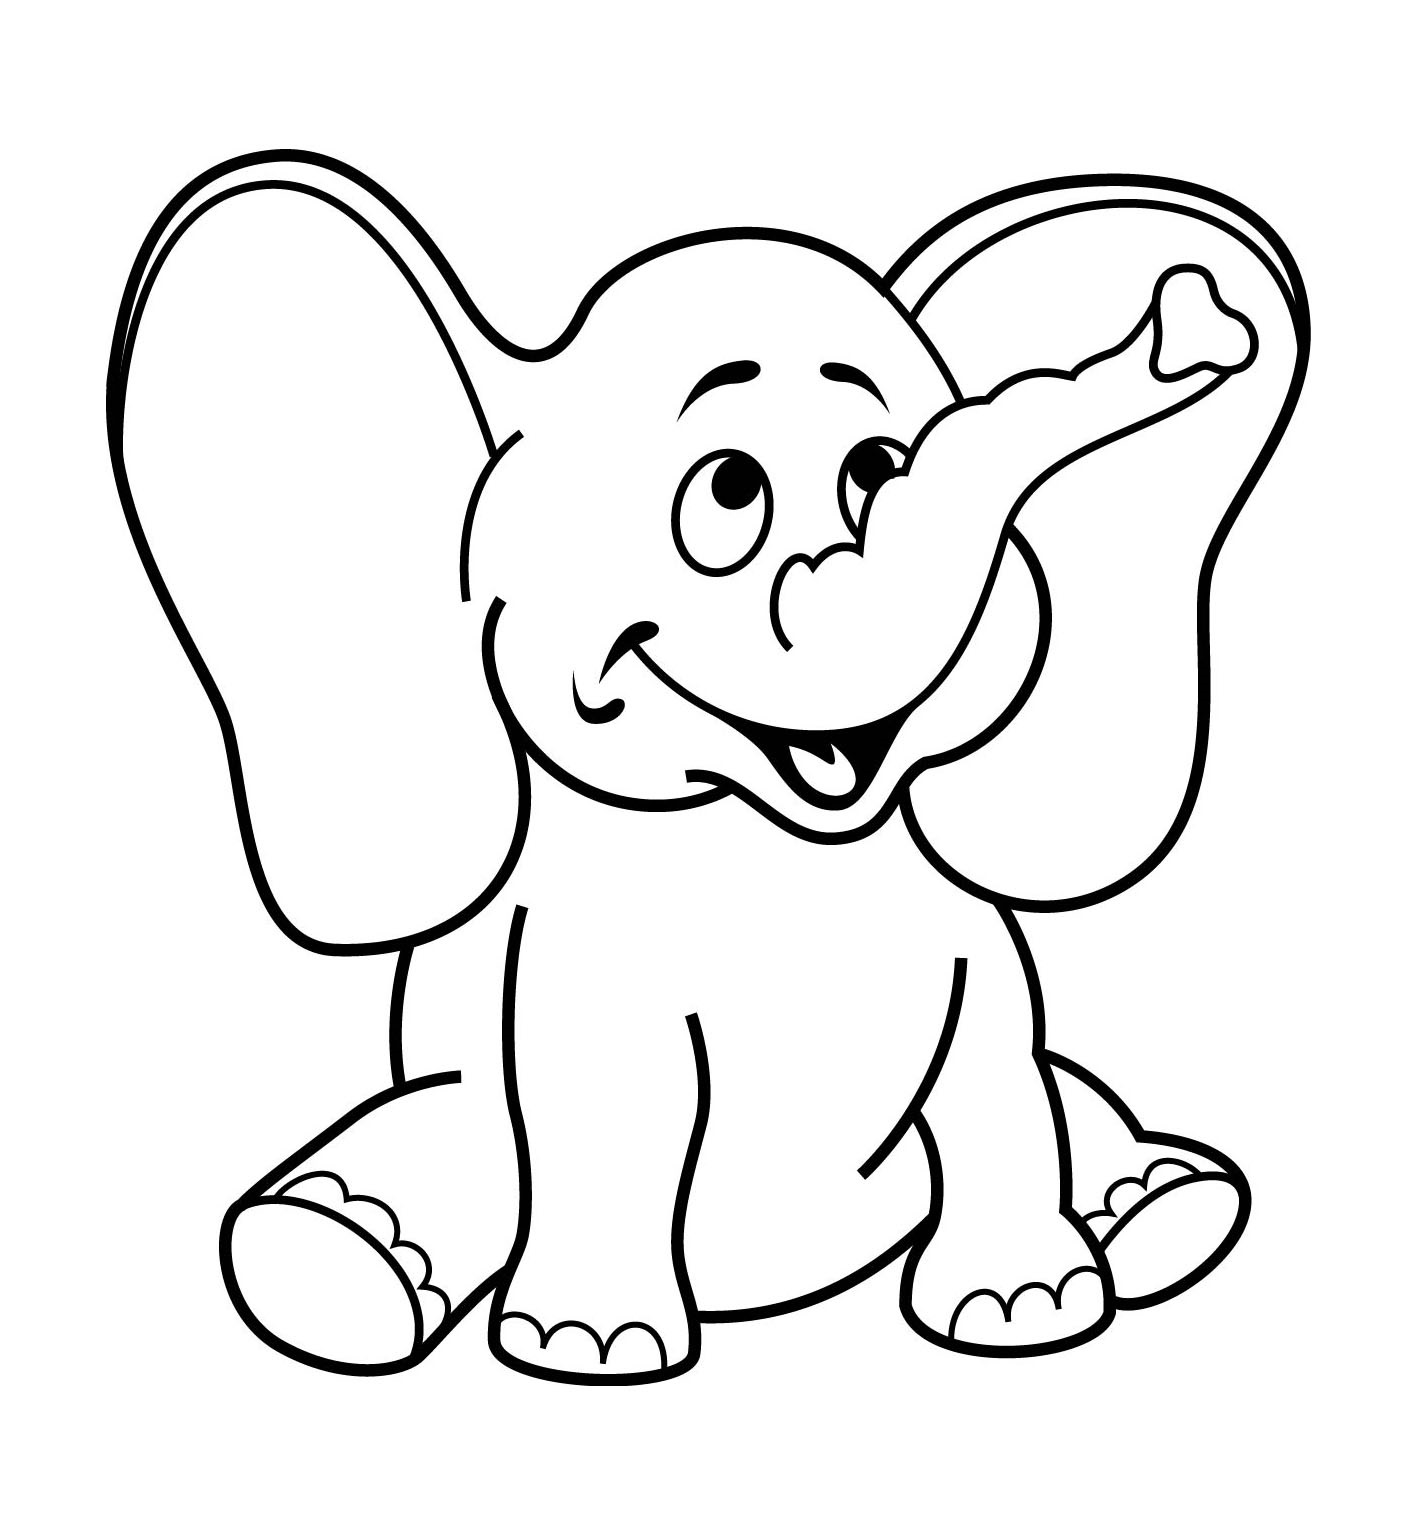 3 year old boy coloring pages desenho colorir batman boy 3 year old coloring pages